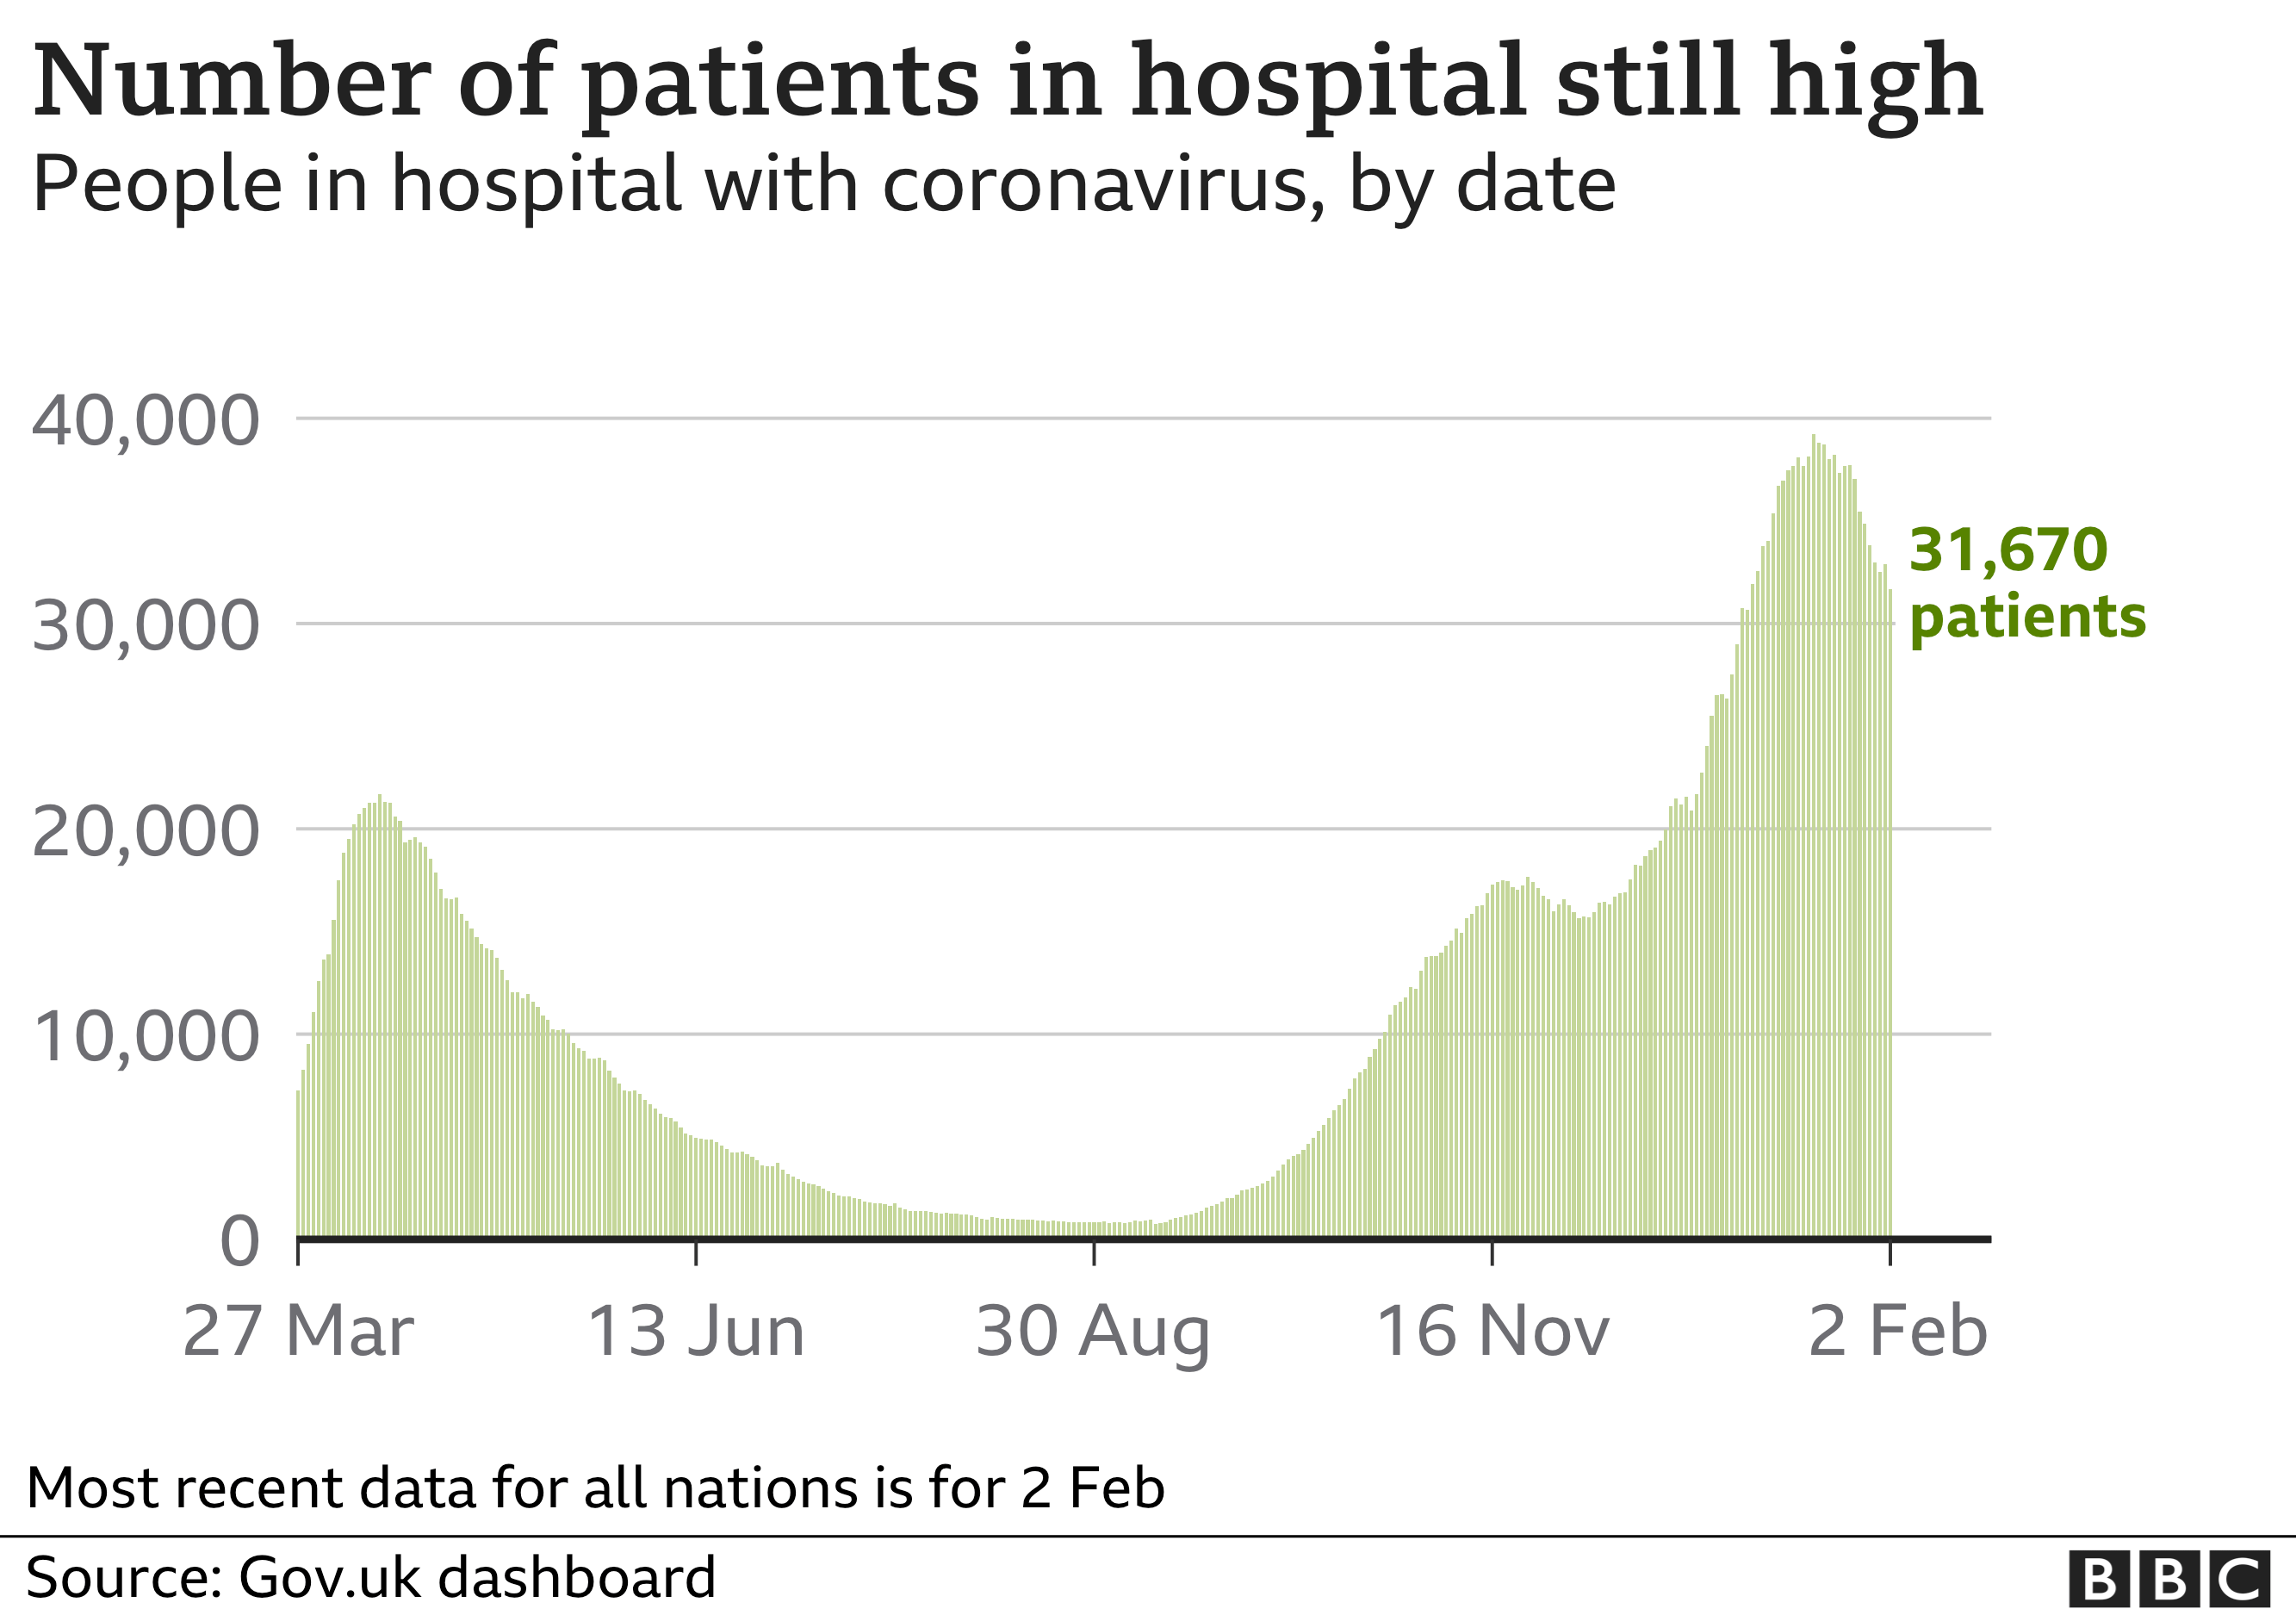 Patients in hospital chart. Updated 4 Feb.